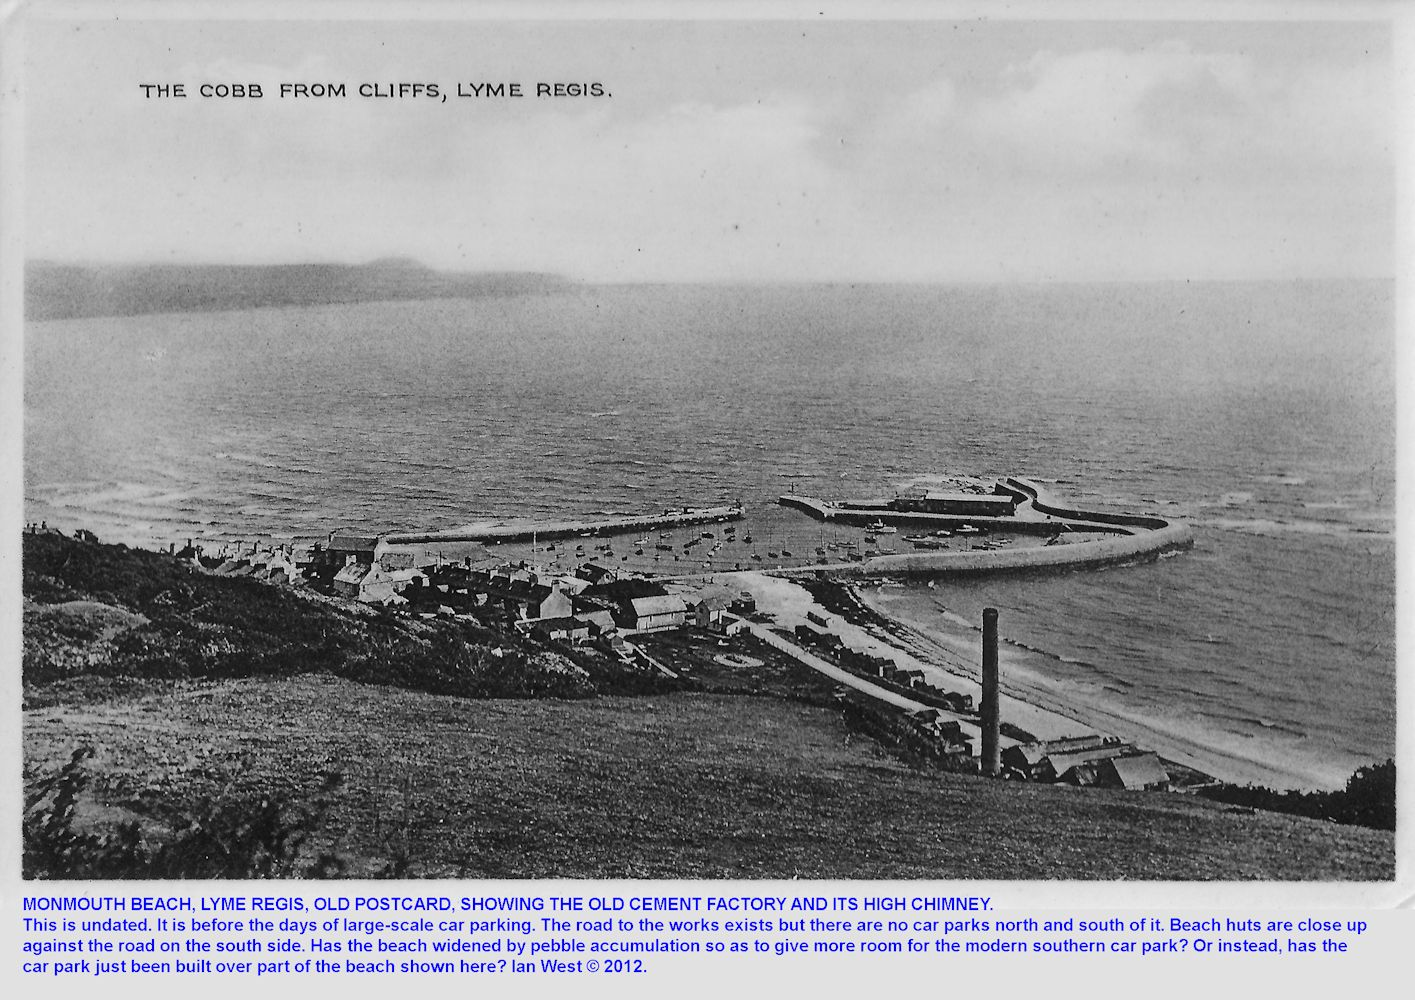 Old postcard showing the cement factory and its high chimney at Monmouth Beach, Lyme Regis, Dorset, undated